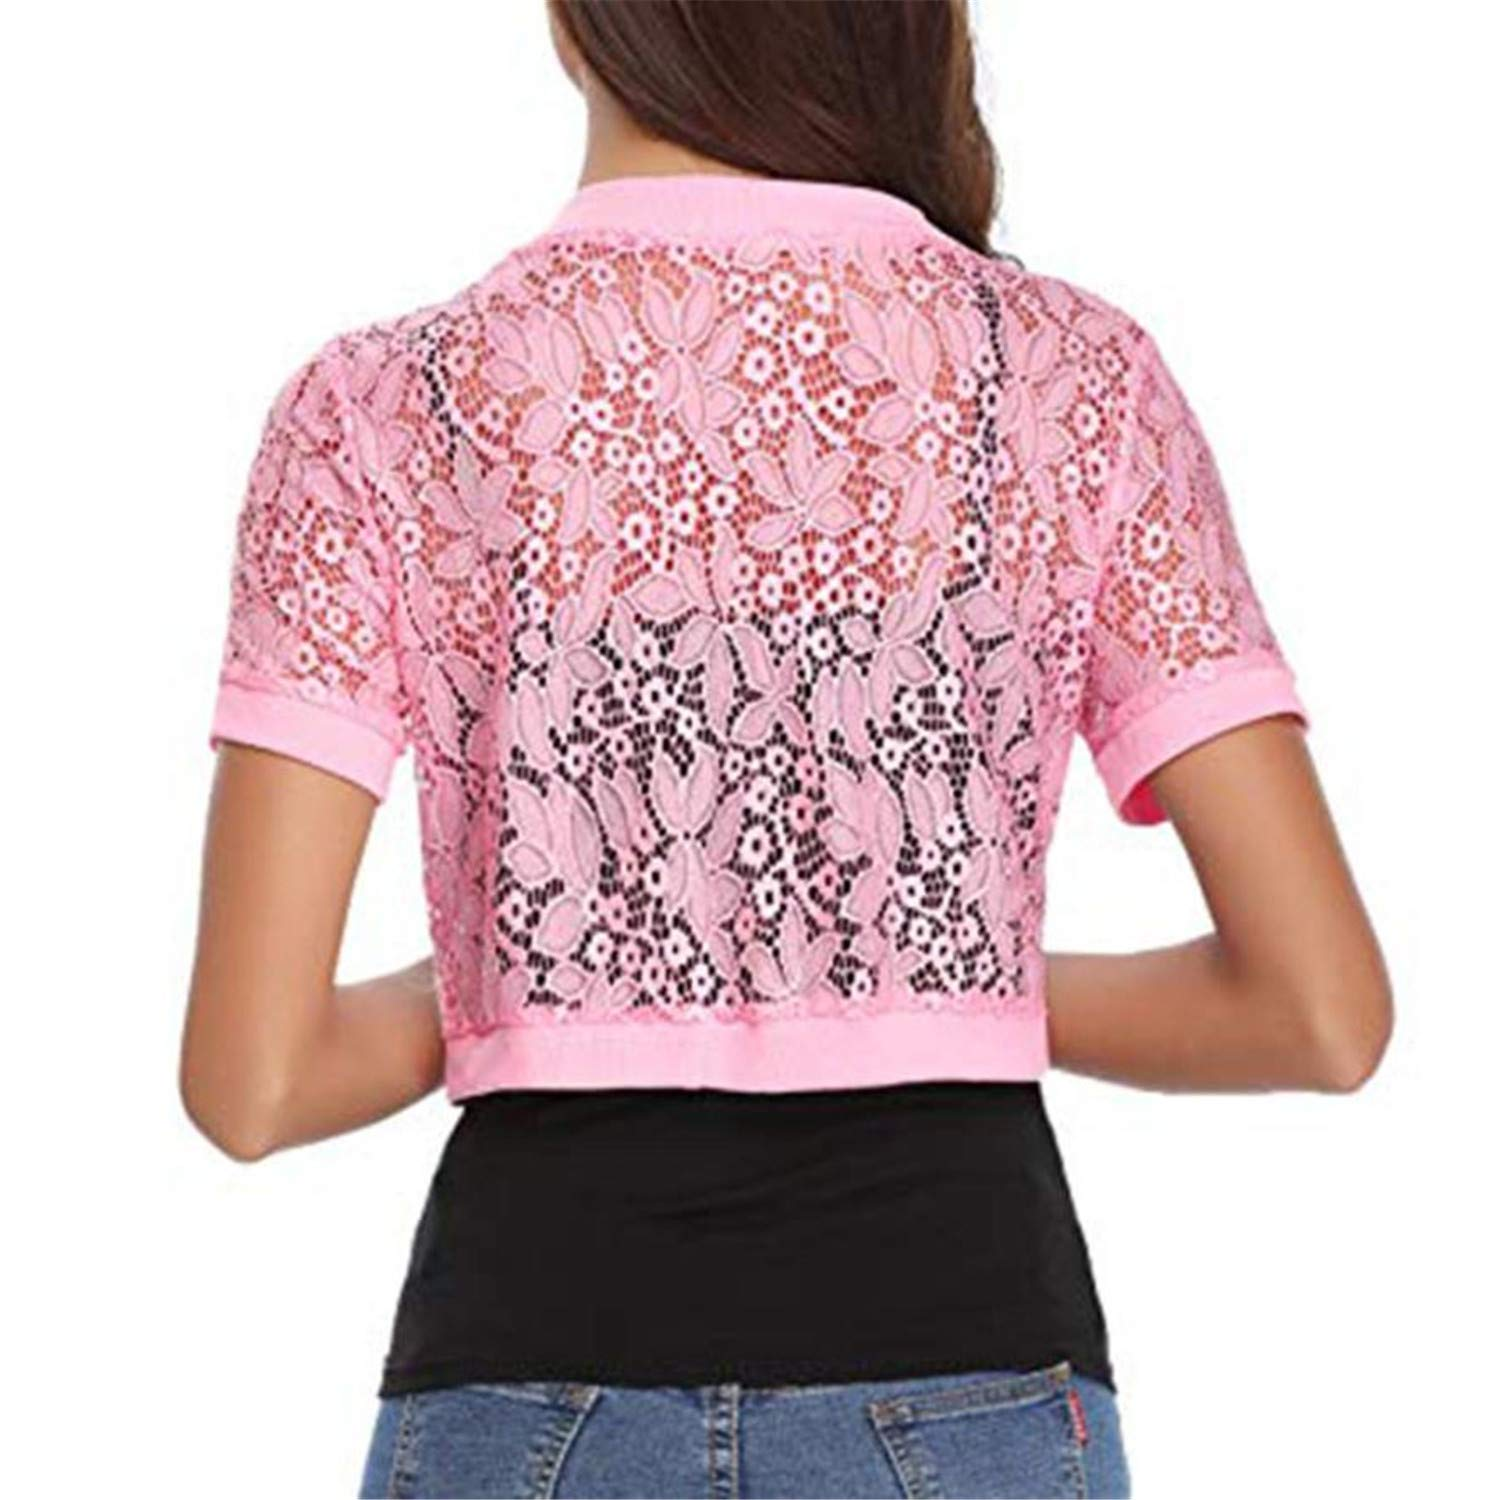 Womens Casual Solid Short Sleeve Floral Lace Shrug Open Front Bolero Cardigan Womens Tops and Blouses White XL